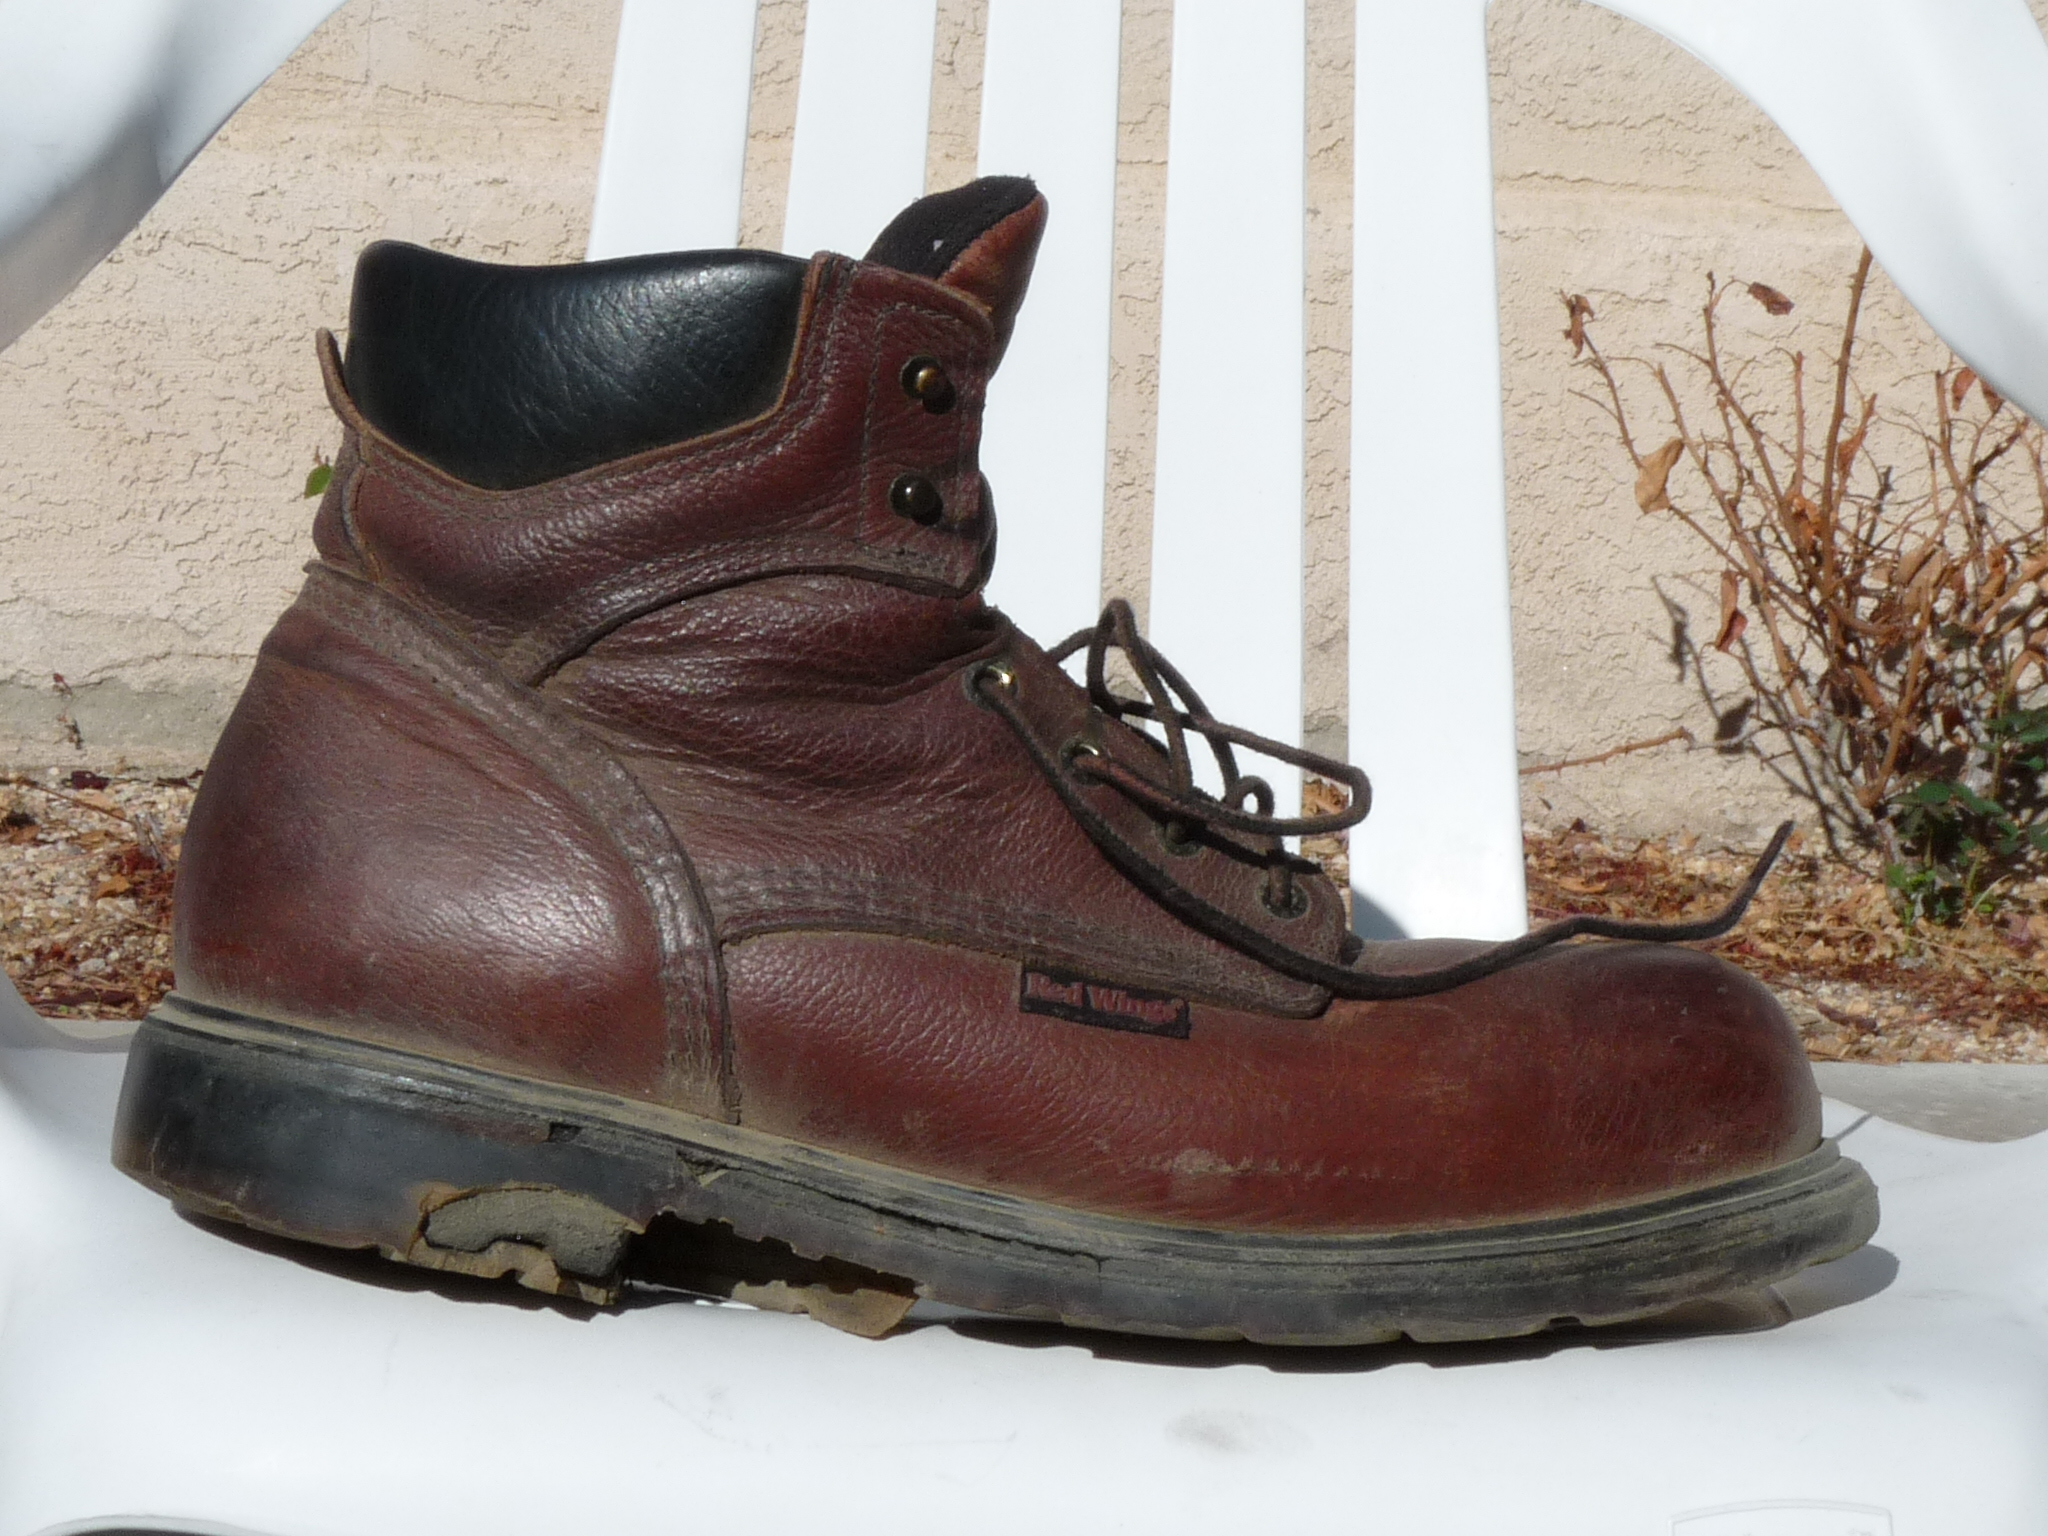 I Like Red Wing Boots. But What Happens When They AREN'T 'Built To ...